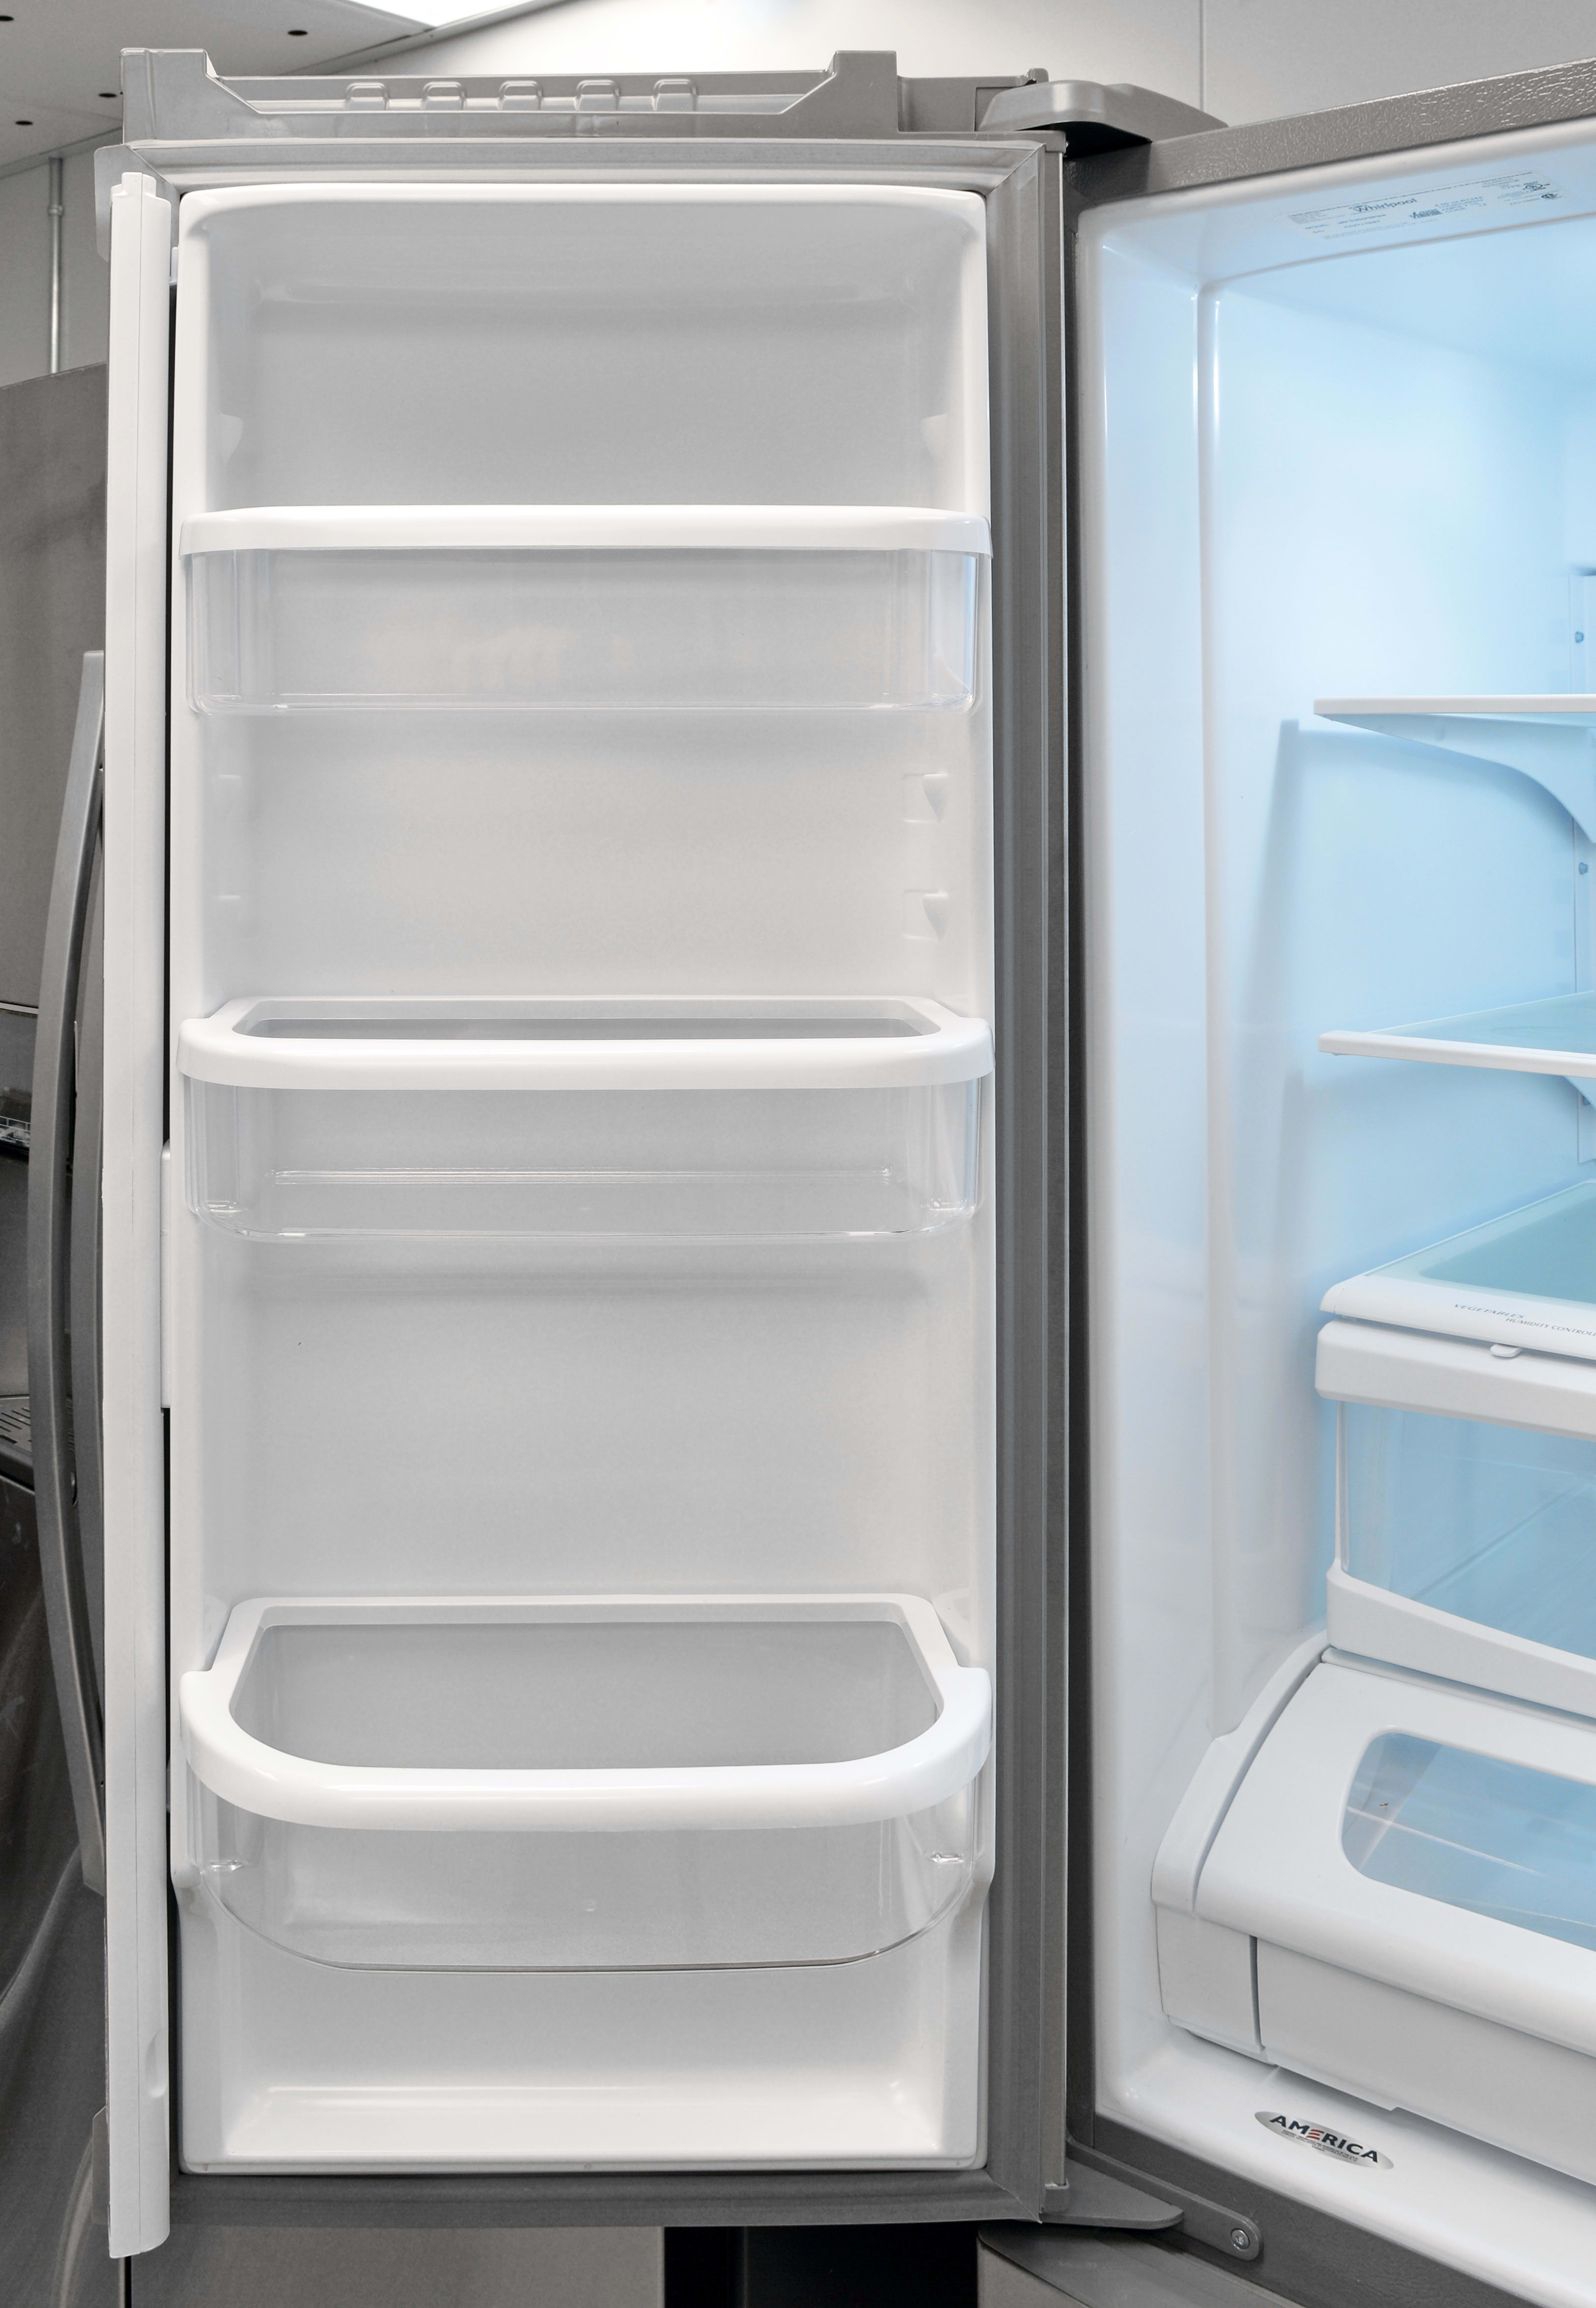 With no ice dispenser, the Whirlpool WRF535SMBM's left fridge door is left available for practical storage.